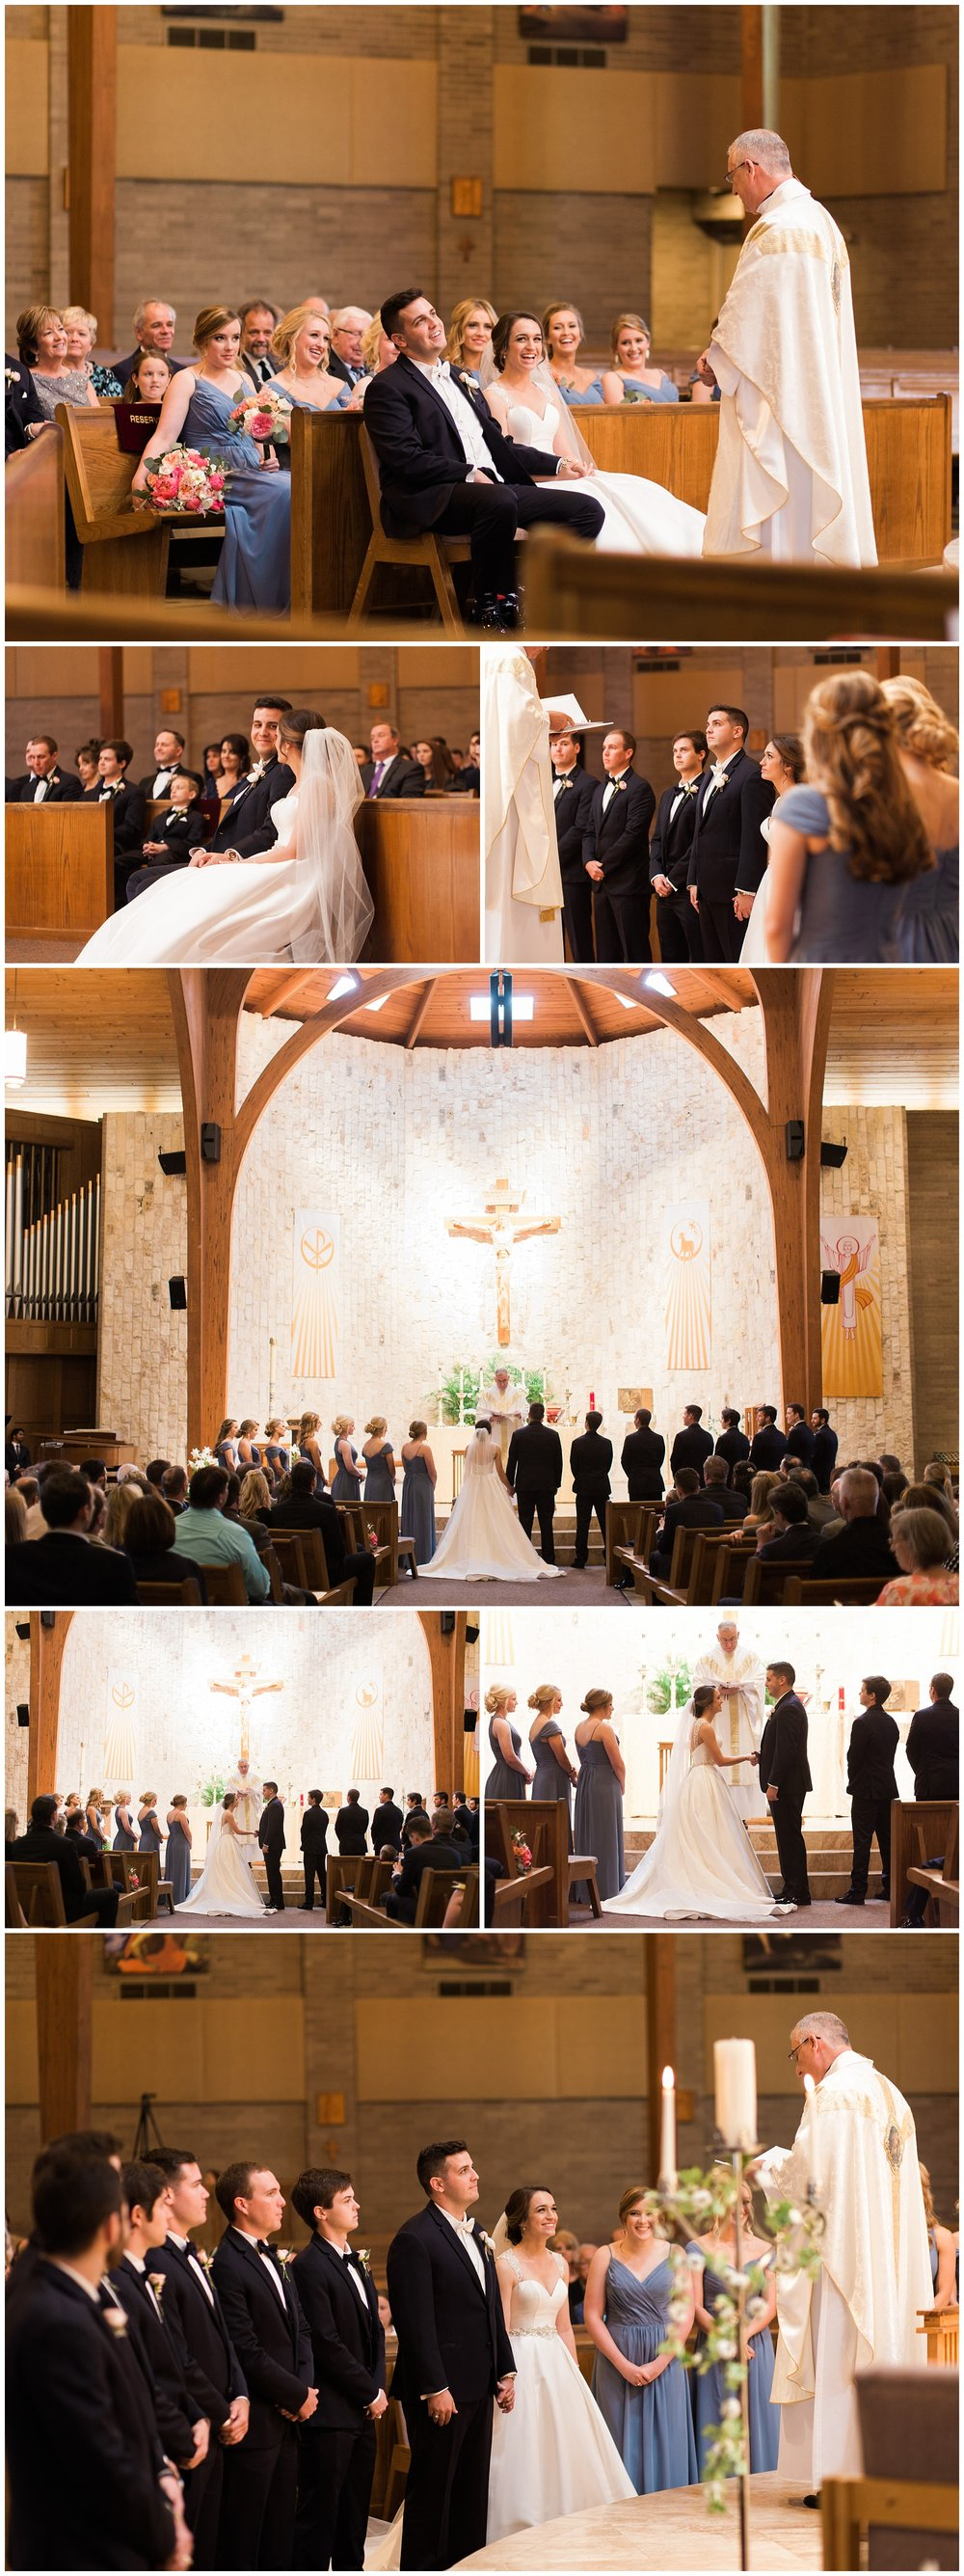 Brownstone_Reserve_Wedding_Kristina_Ross_Photography_0017.jpg